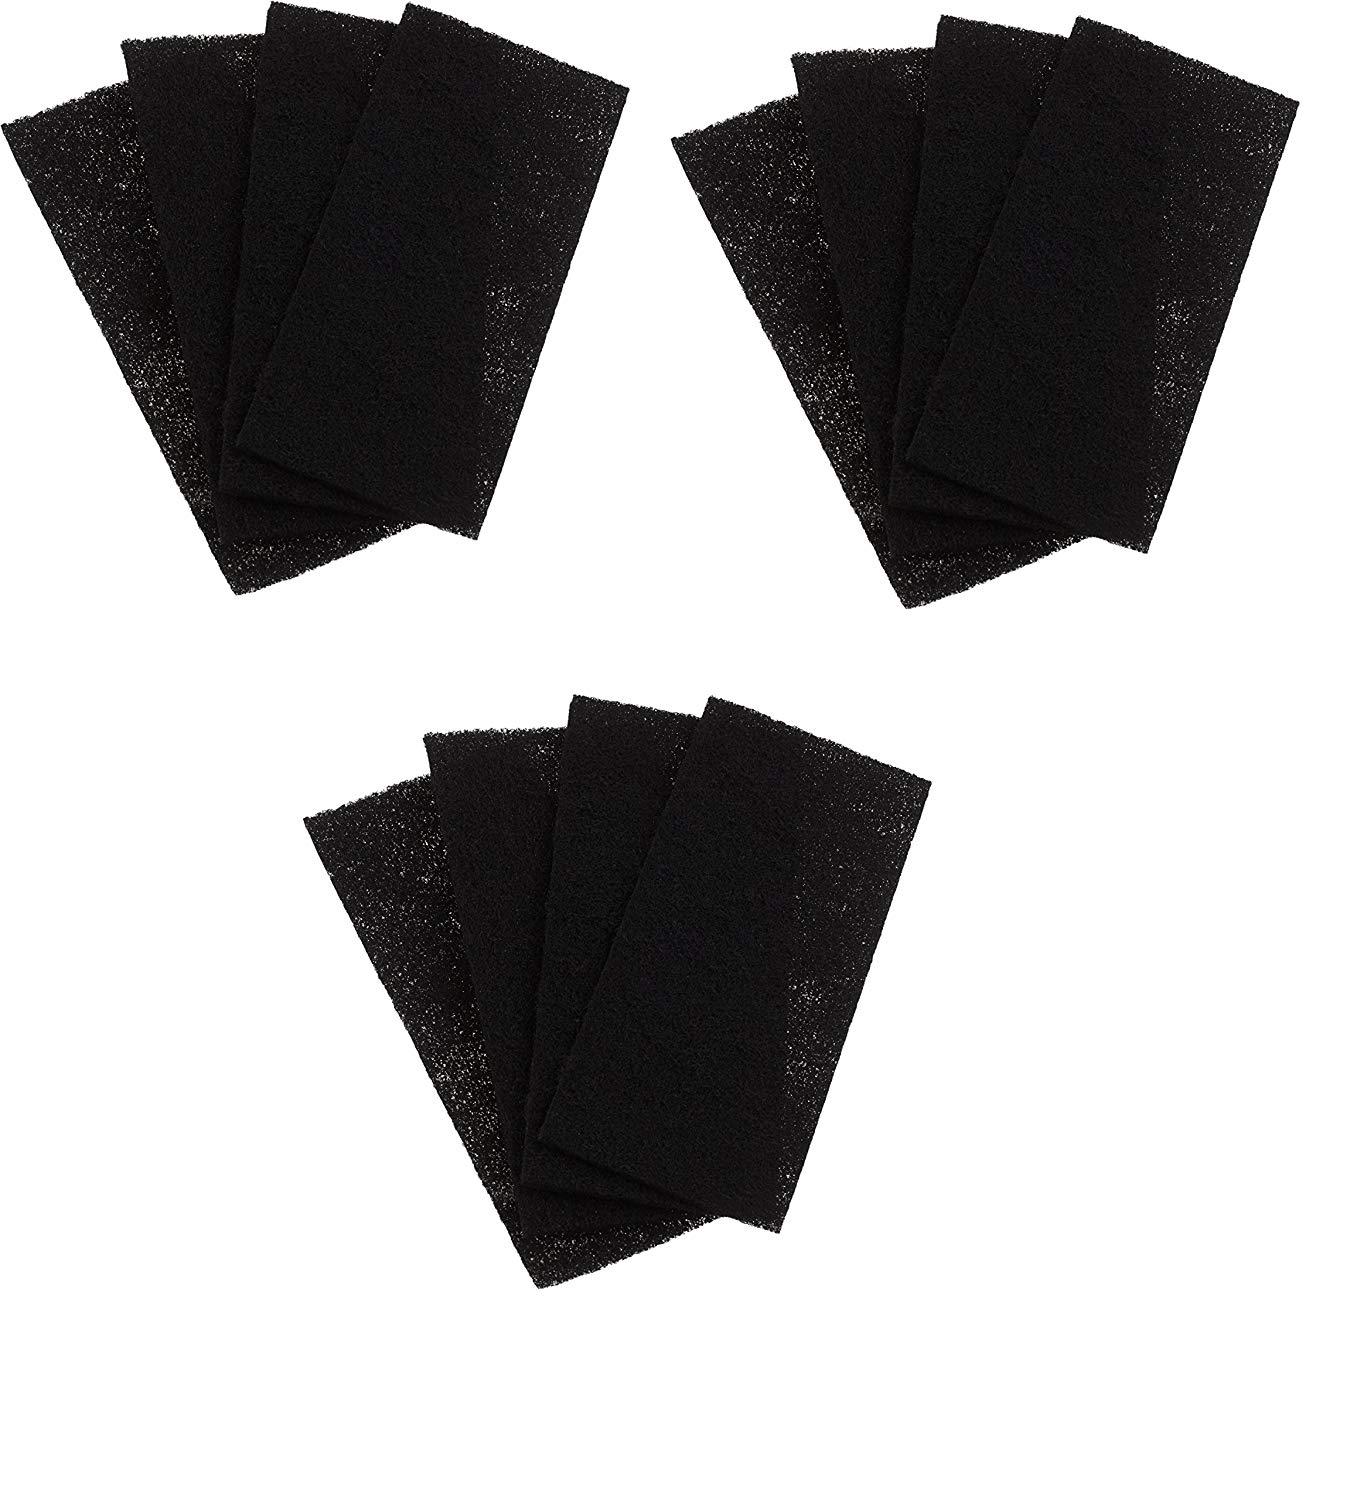 Replacement Holmes Carbon Filters HAPF60, CP-6011 Filter C, 4 Pack (12)